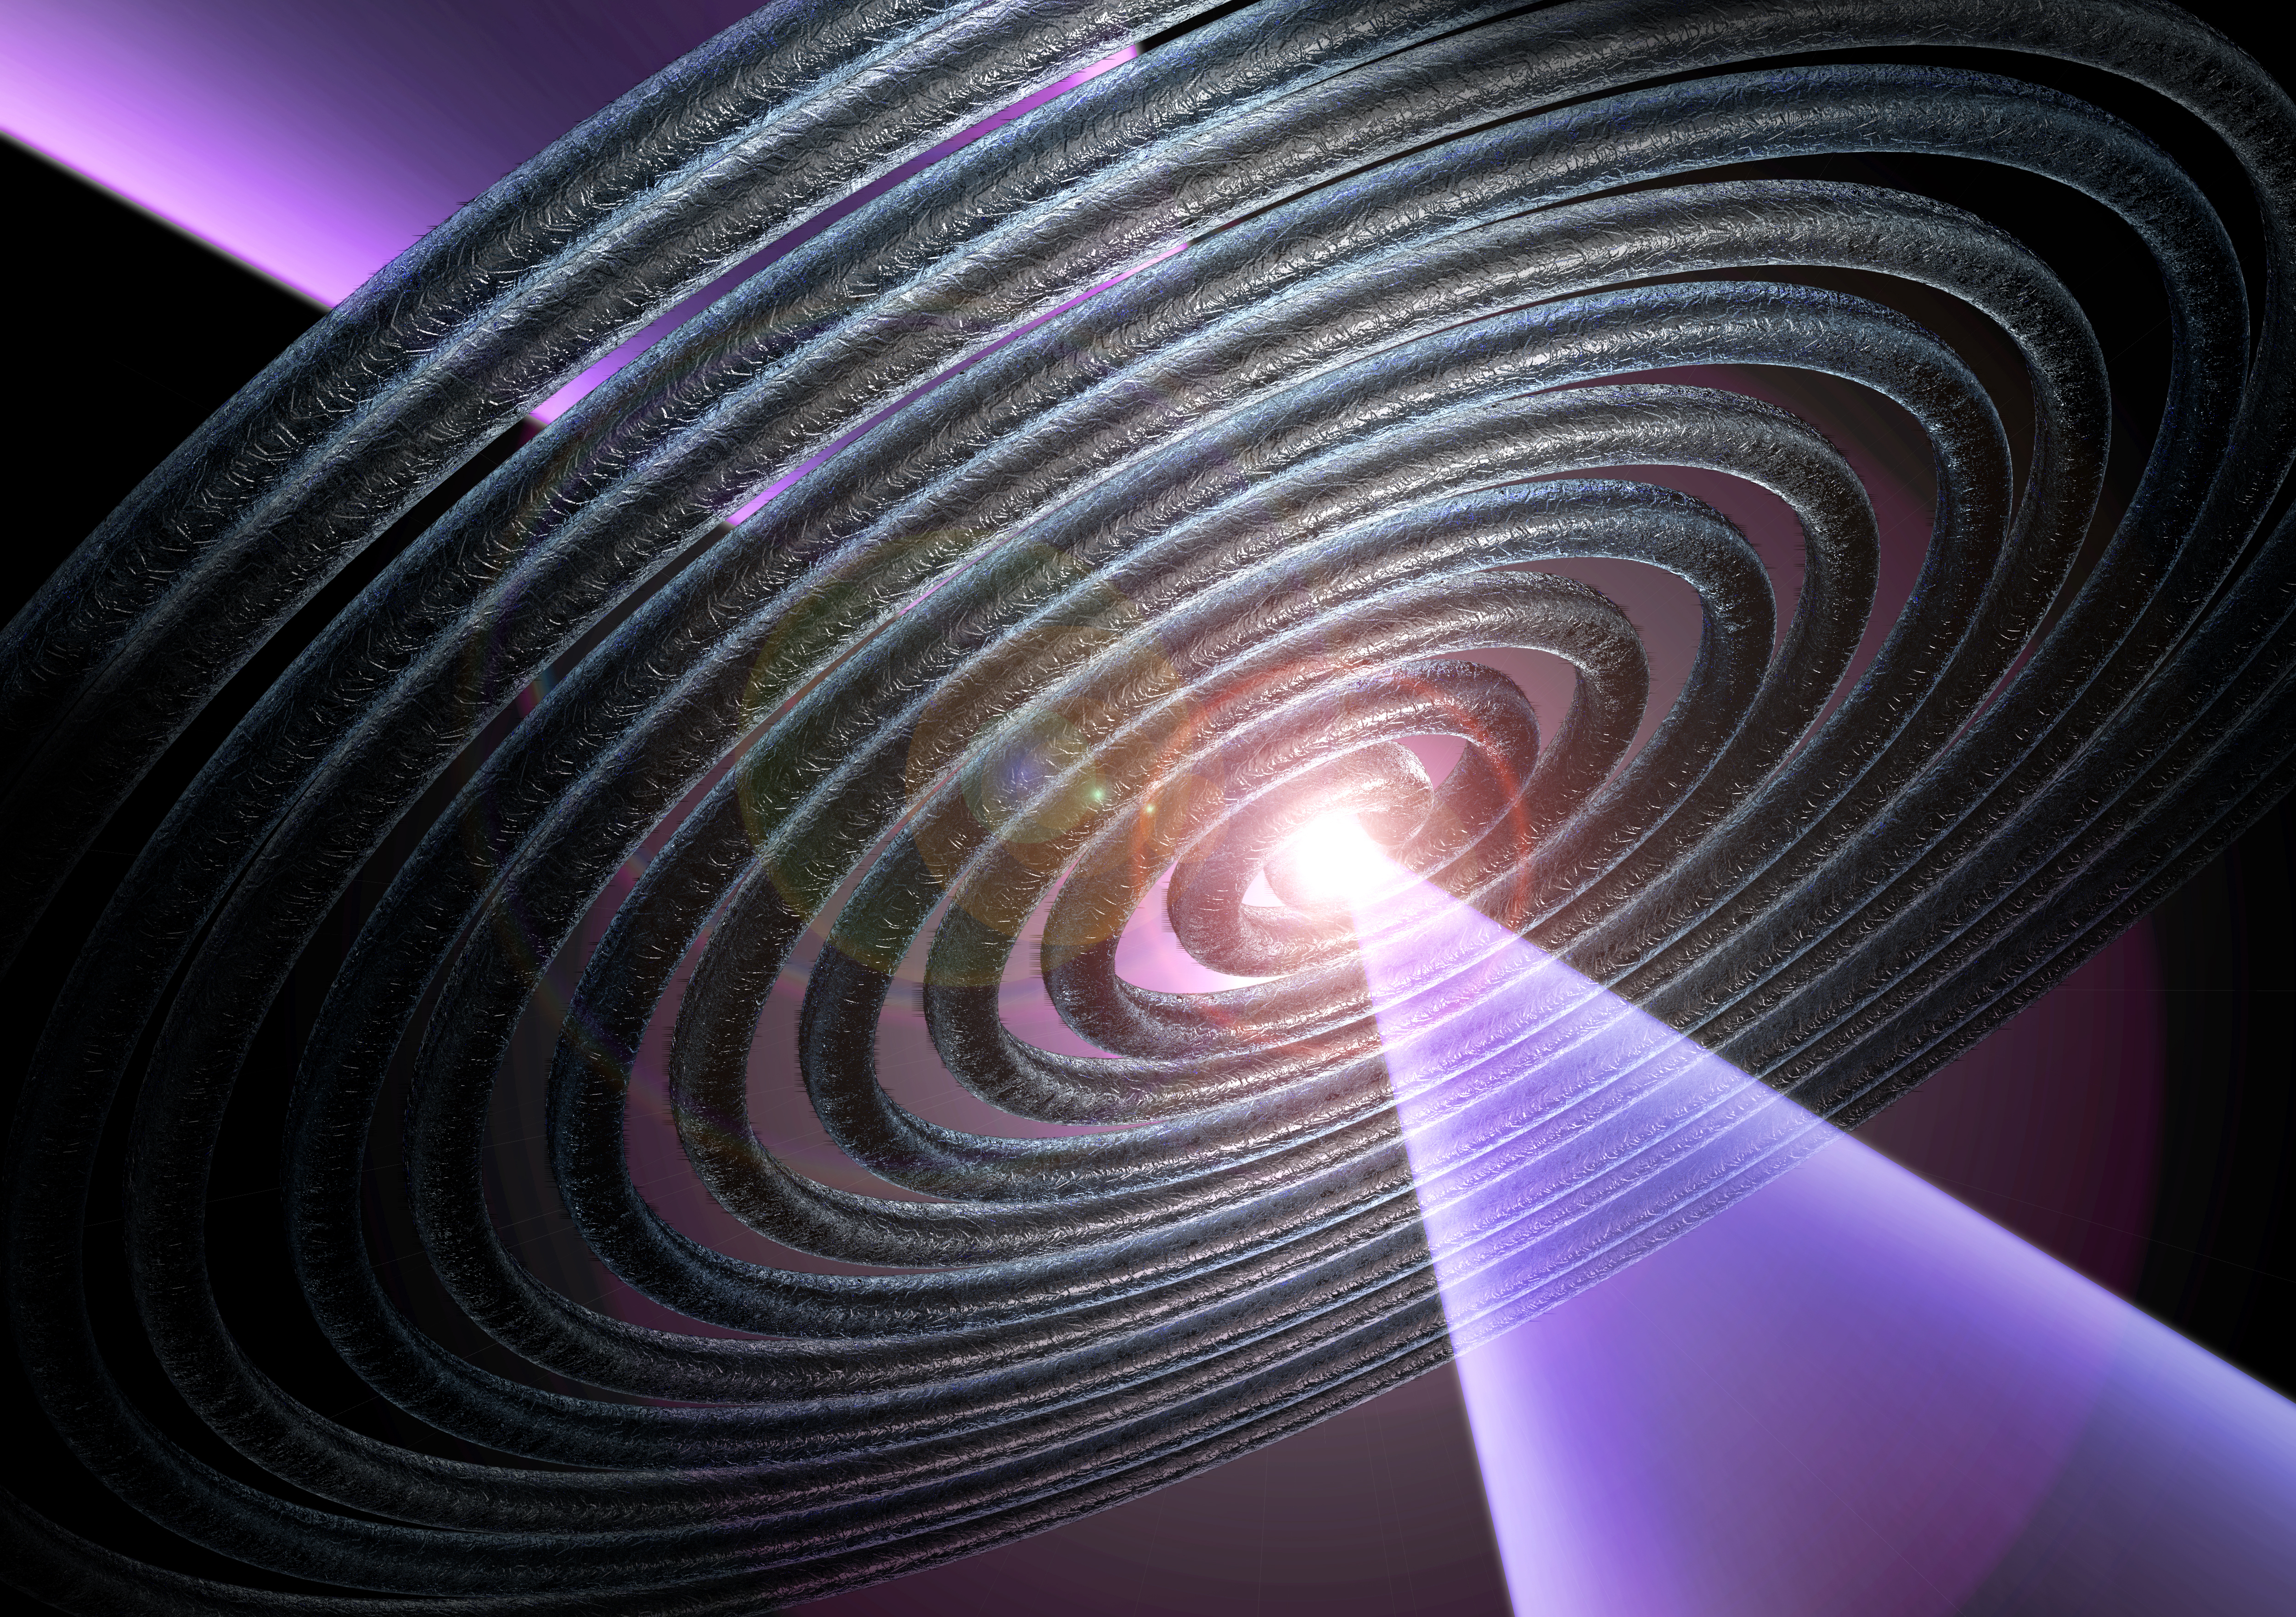 Gravitational wave detection: how binary stars turn into tight pairs of massive black holes